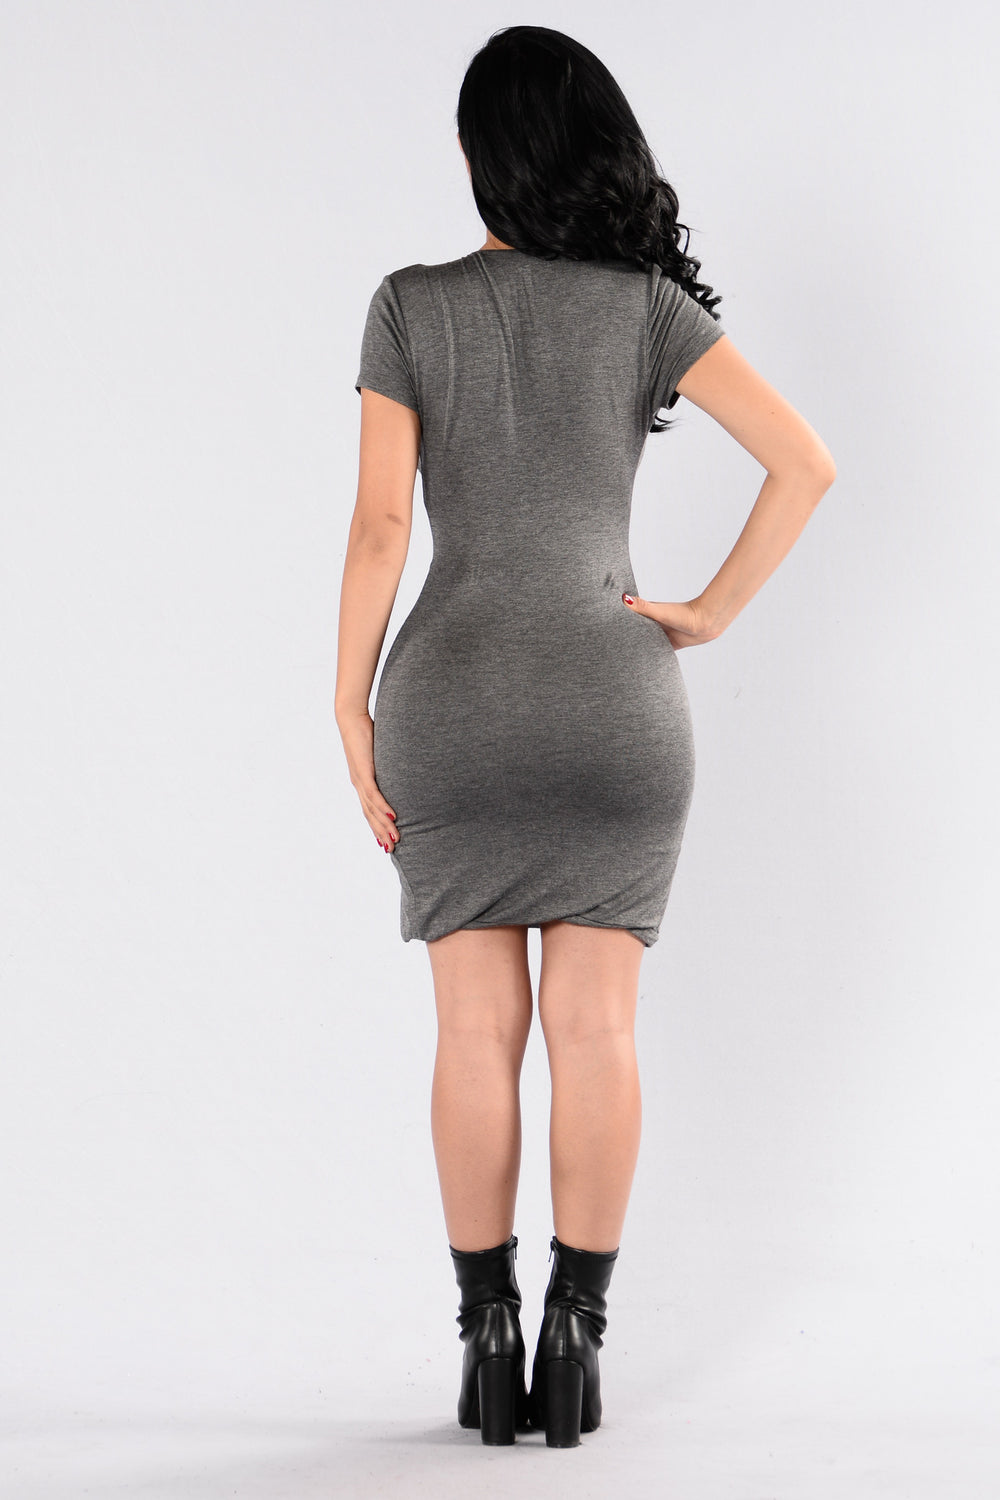 Single Ladies Dress - Charcoal